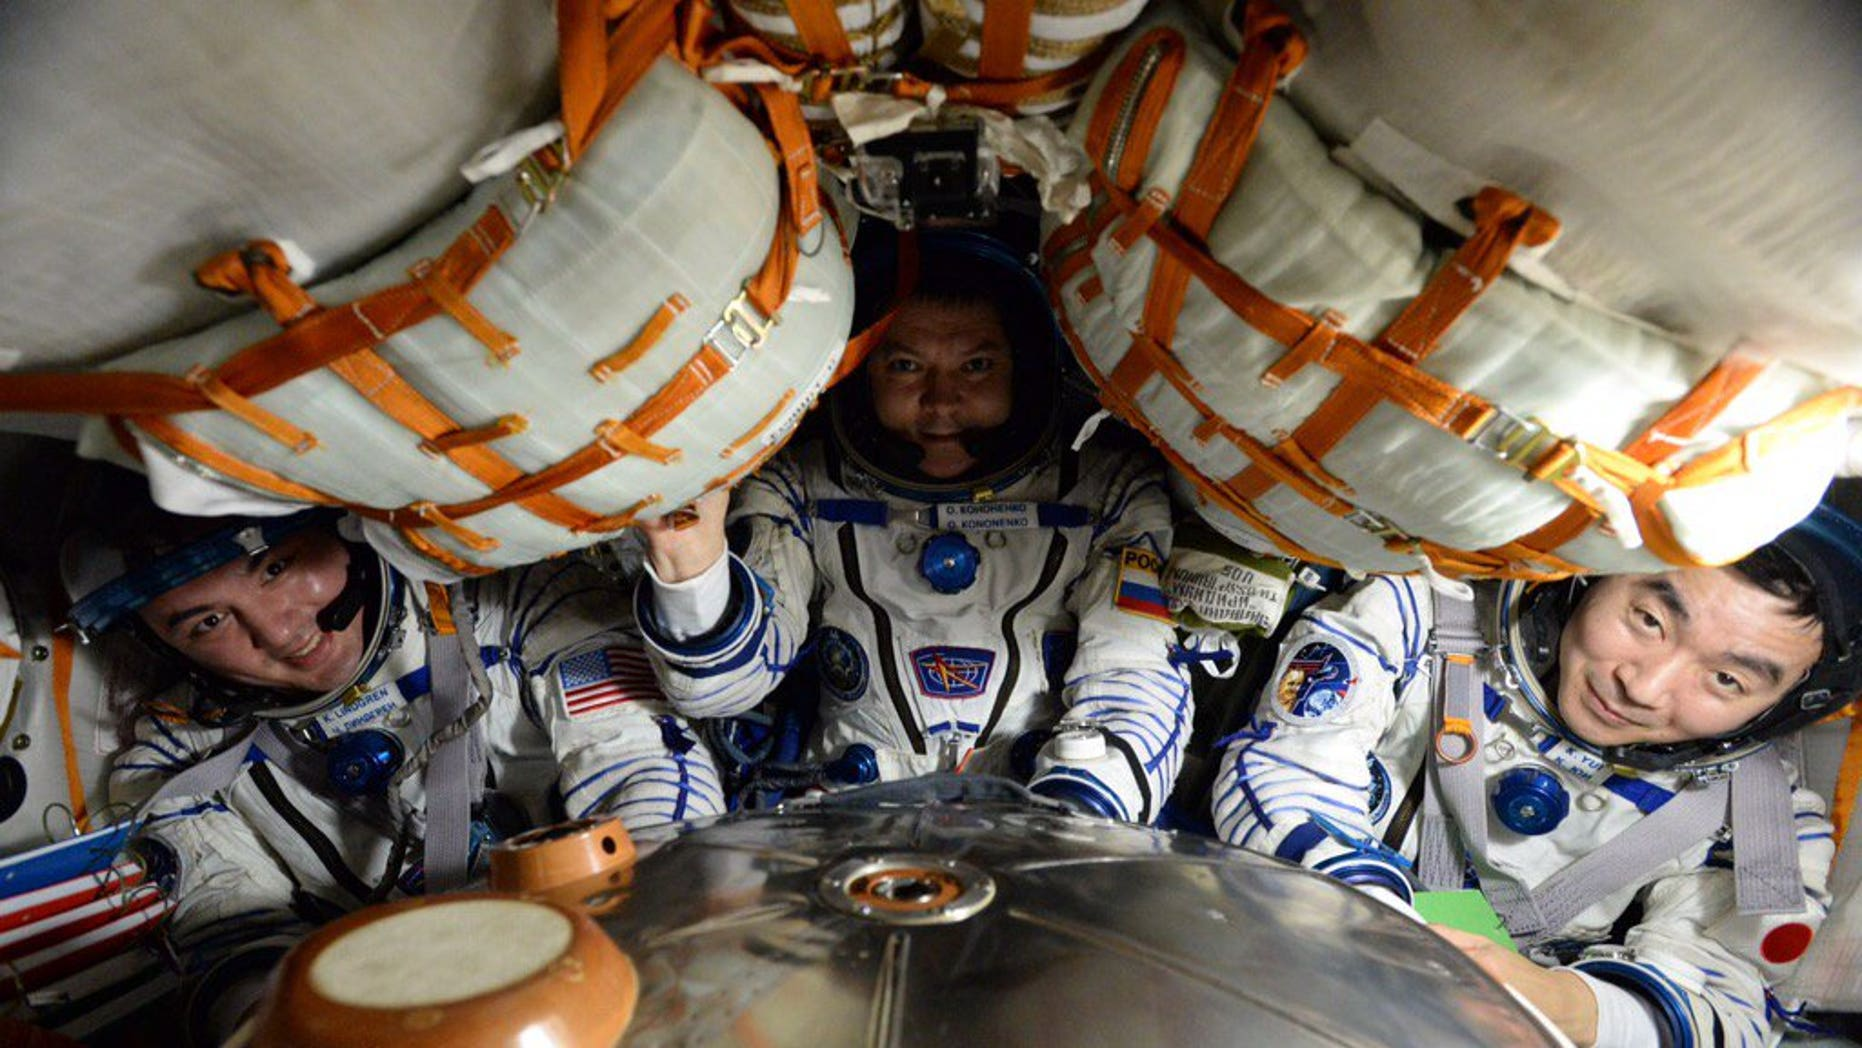 Expedition 45 crew members Kjell Lindgren of NASA, Oleg Kononenko of the Russian Federal Space Agency and Kimiya Yui of the Japan Aerospace Exploration Agency settle into the Soyuz TMA-17M spacecraft that carried them safely back to Earth on Dec. 11, 2015 after their 141-day mission aboard the International Space Station. (NASA)